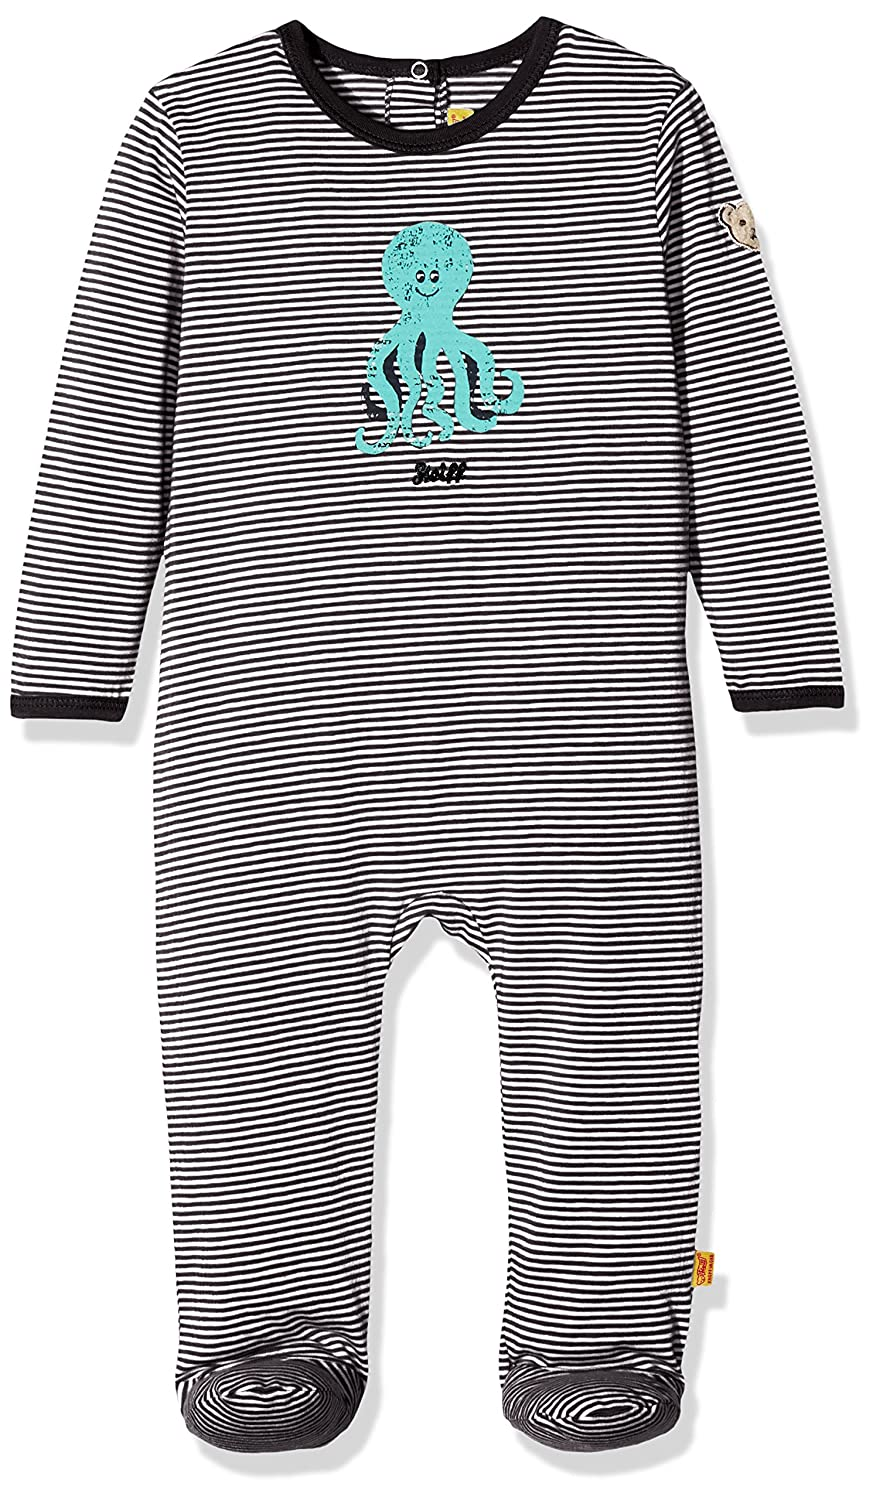 Steiff Boy's Footies Steiff Boy' s Footies Steiff Collection 6832851